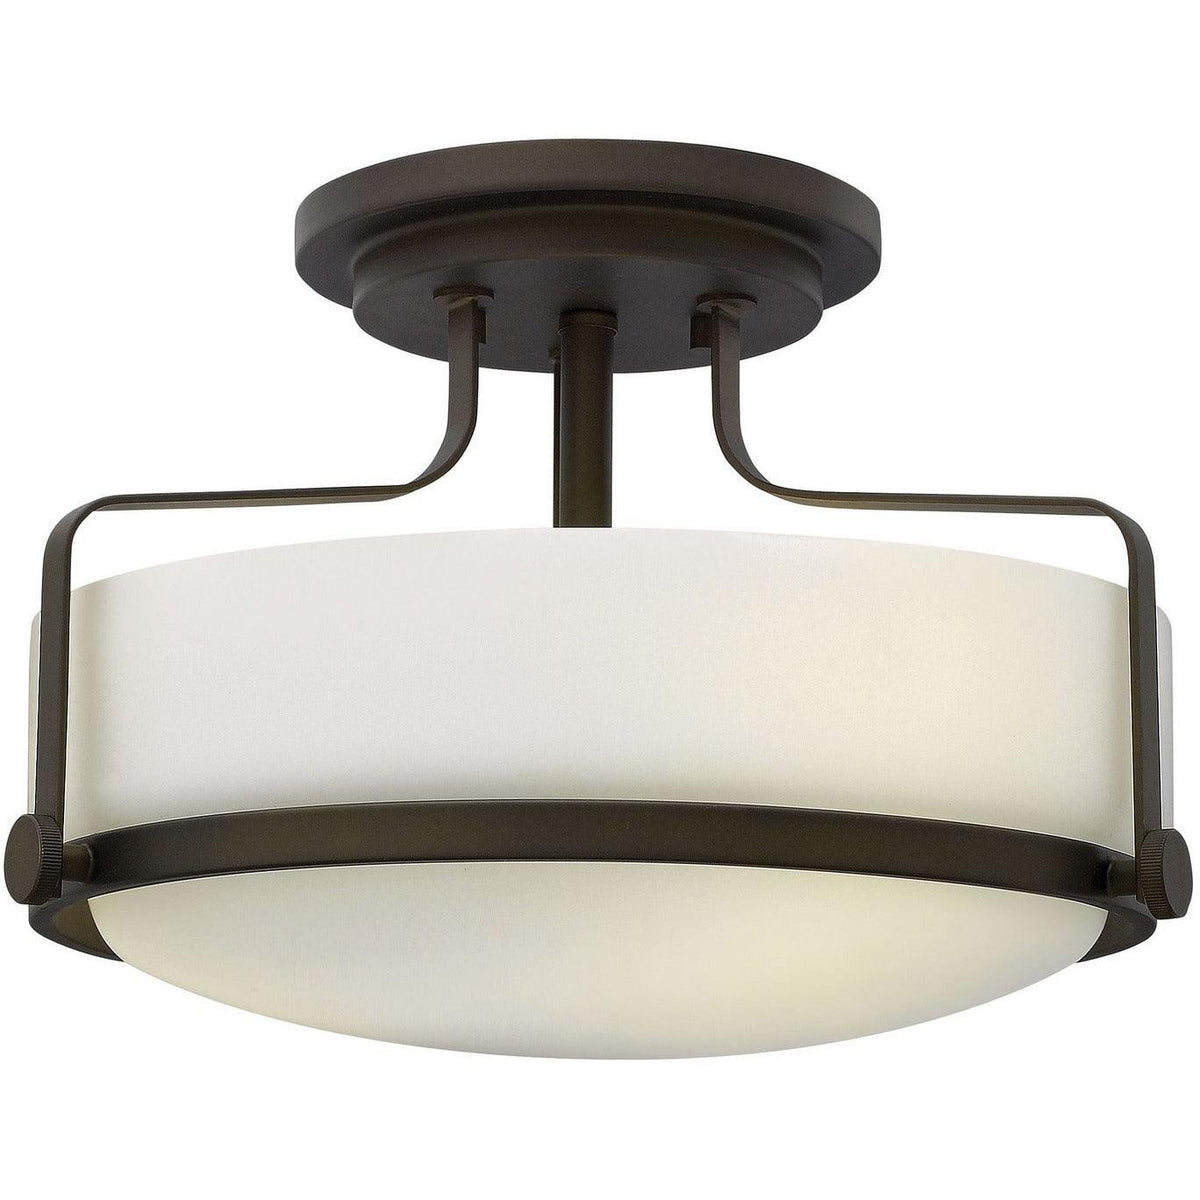 Hinkley Canada - 3641OZ-LED - LED Semi-Flush Mount - Harper - Oil Rubbed Bronze